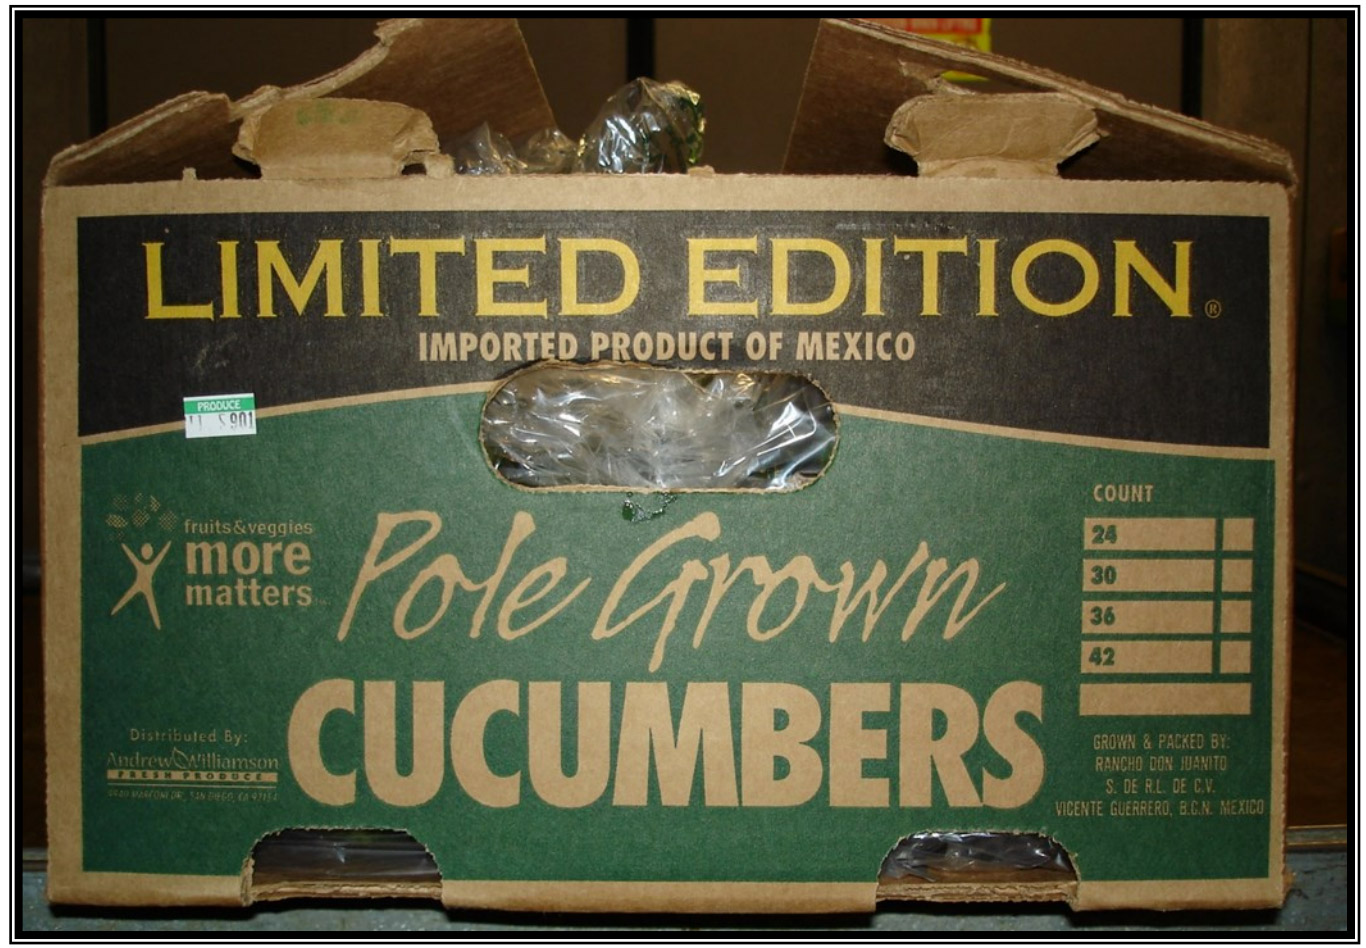 Salmonella Outbreak Potentially Linked To Andrew & Williamson Cucumbers